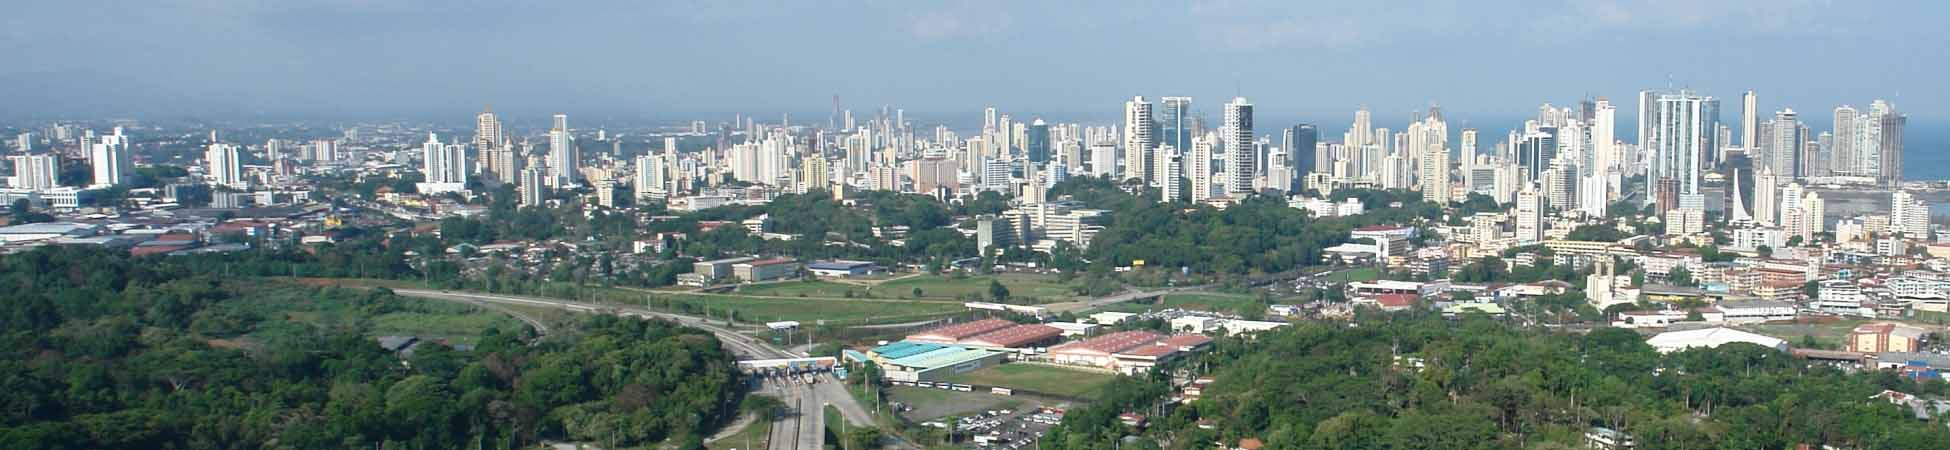 Panama City Reise